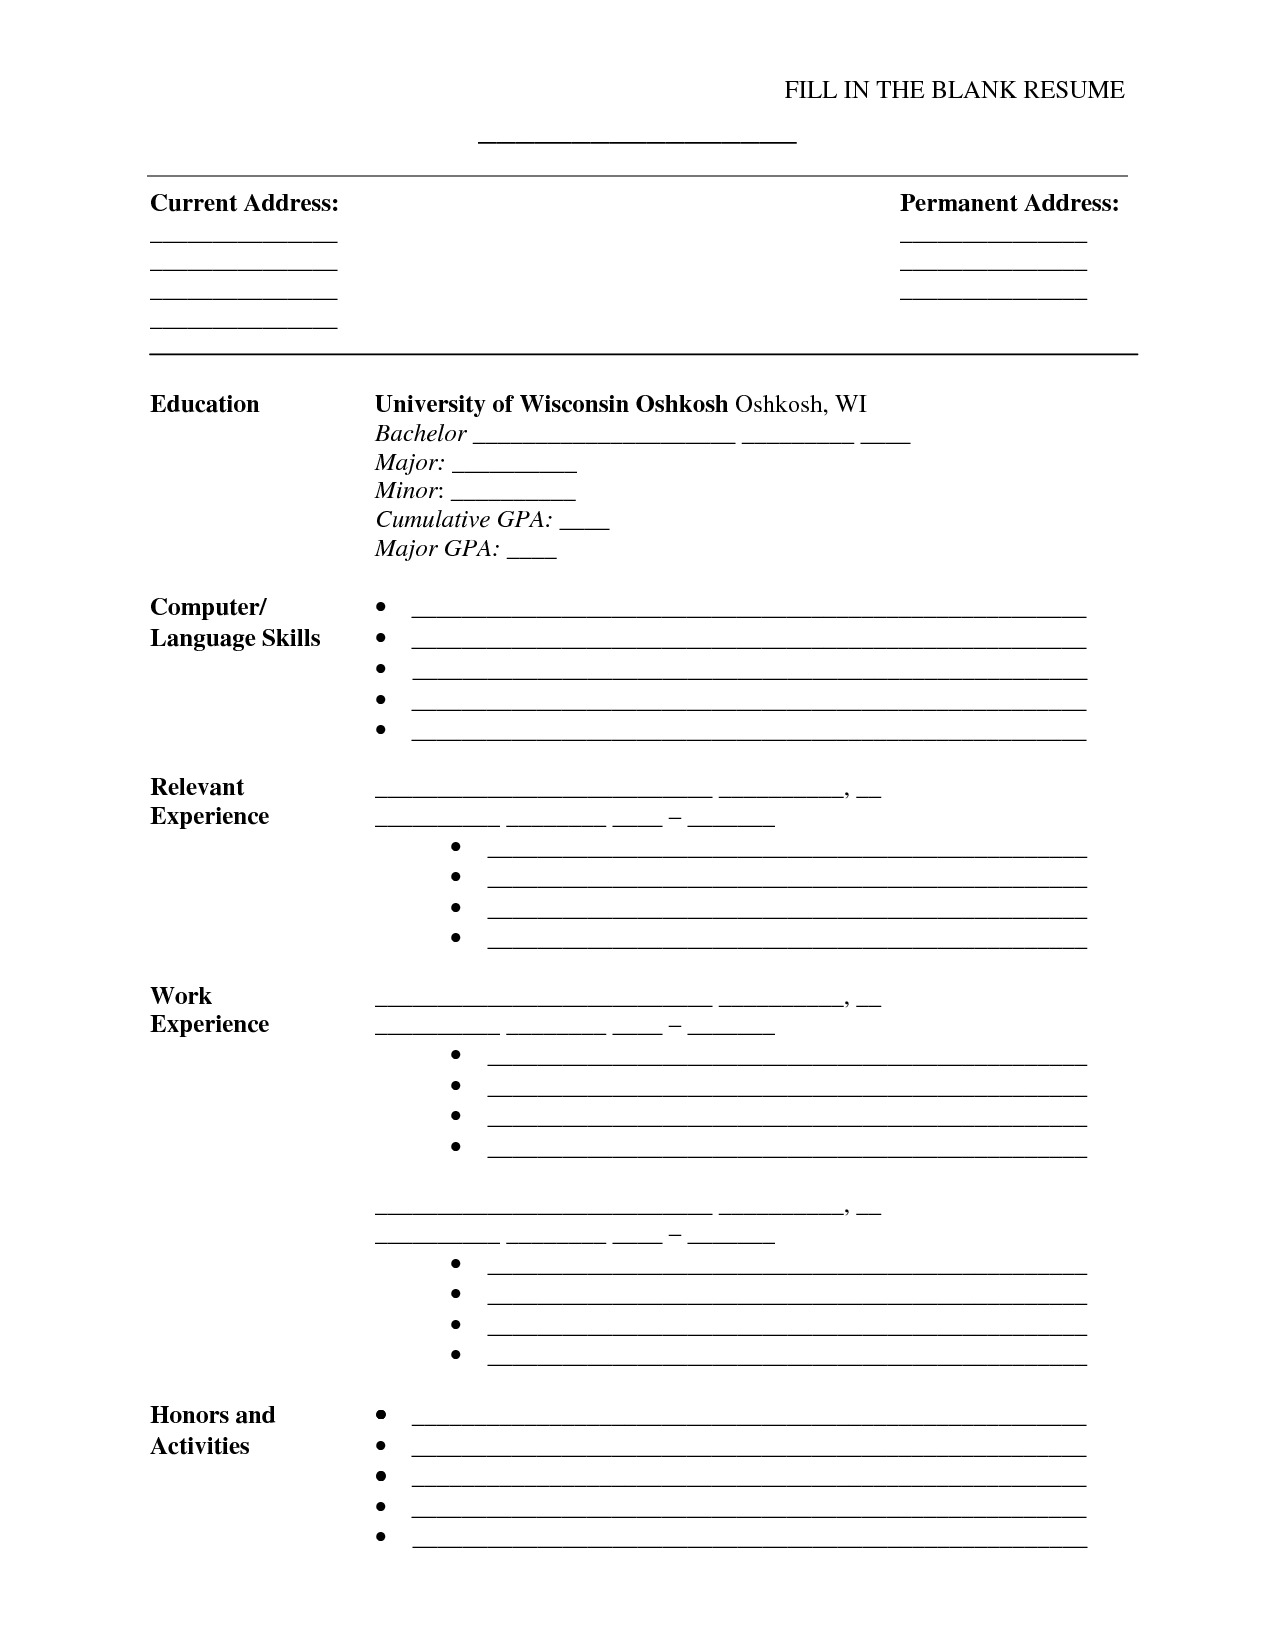 fill in the blank resume pdf